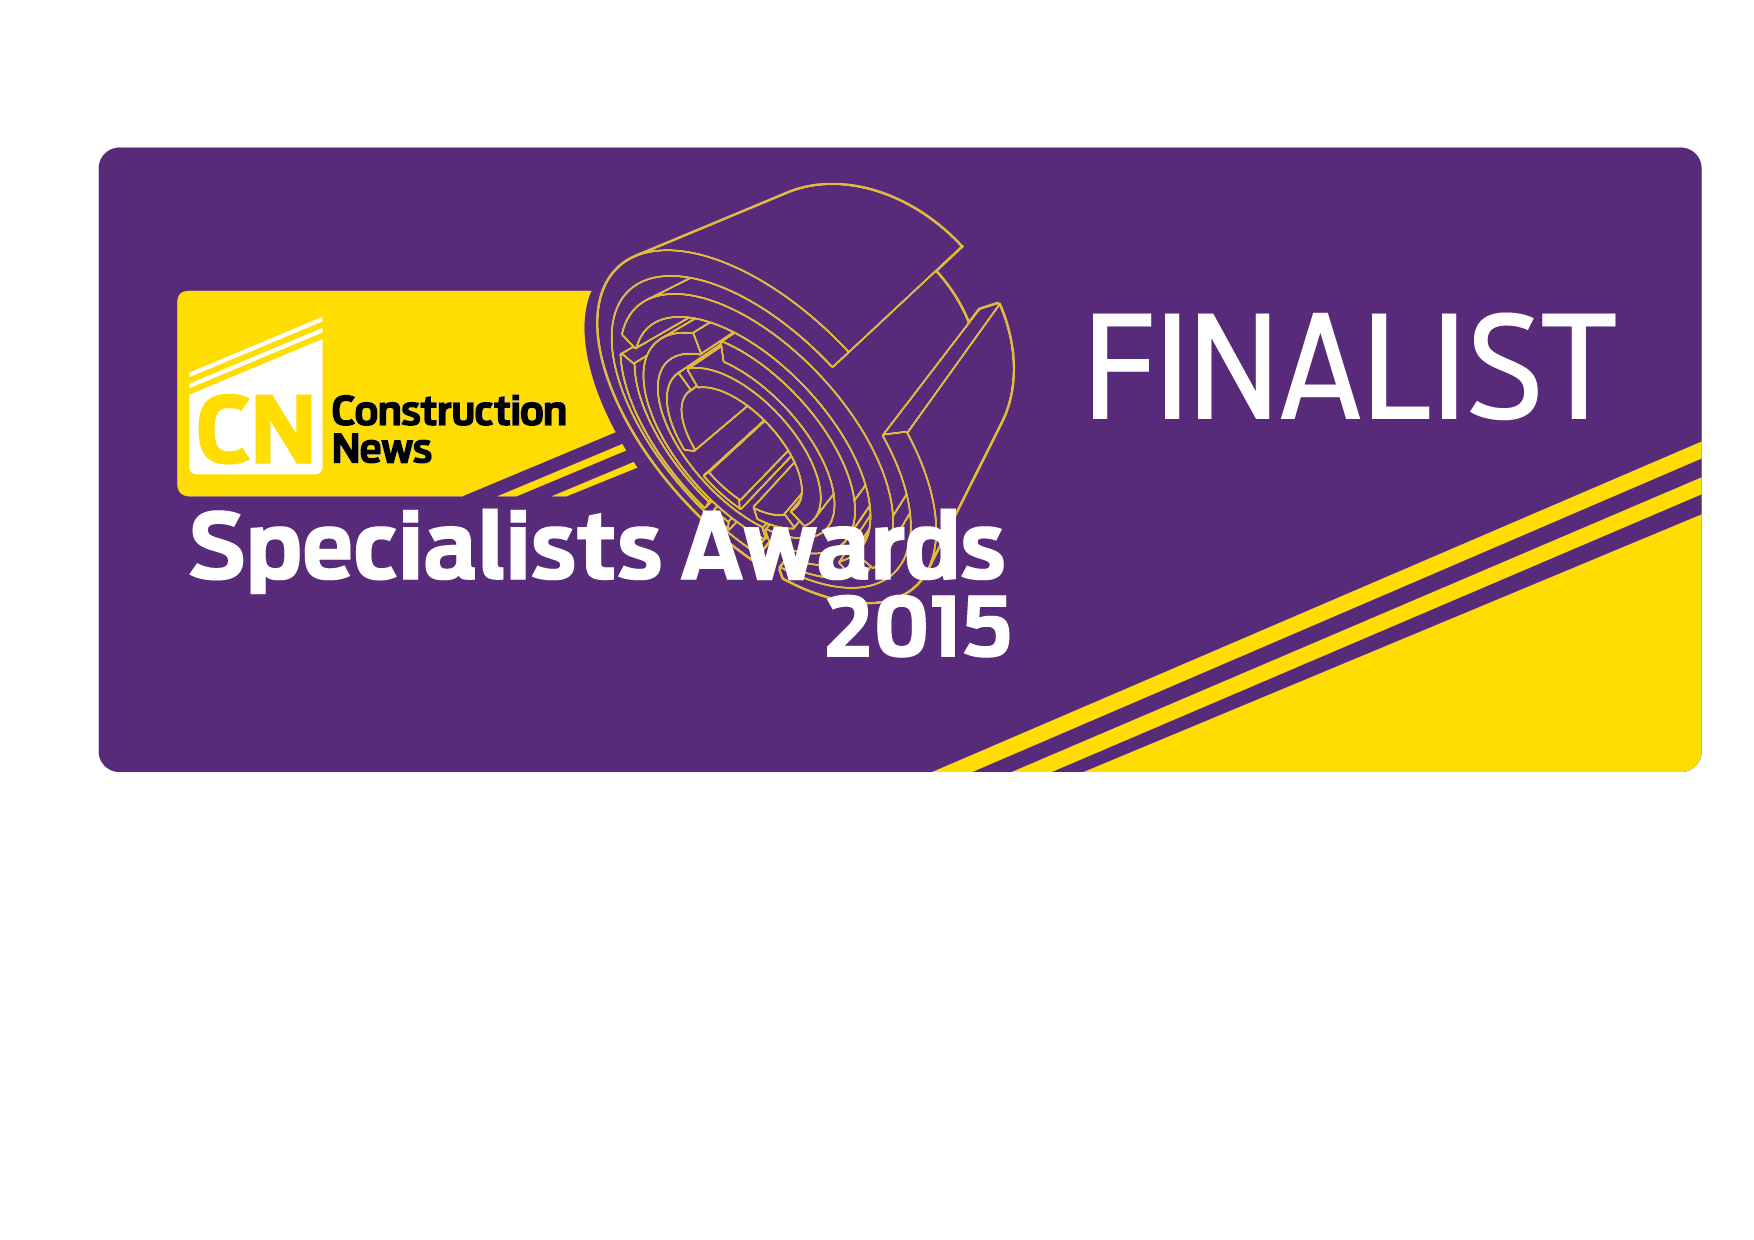 CSIC CSattAR and UtterBerry technologies shortlisted for Construction News Specialist Awards 2015